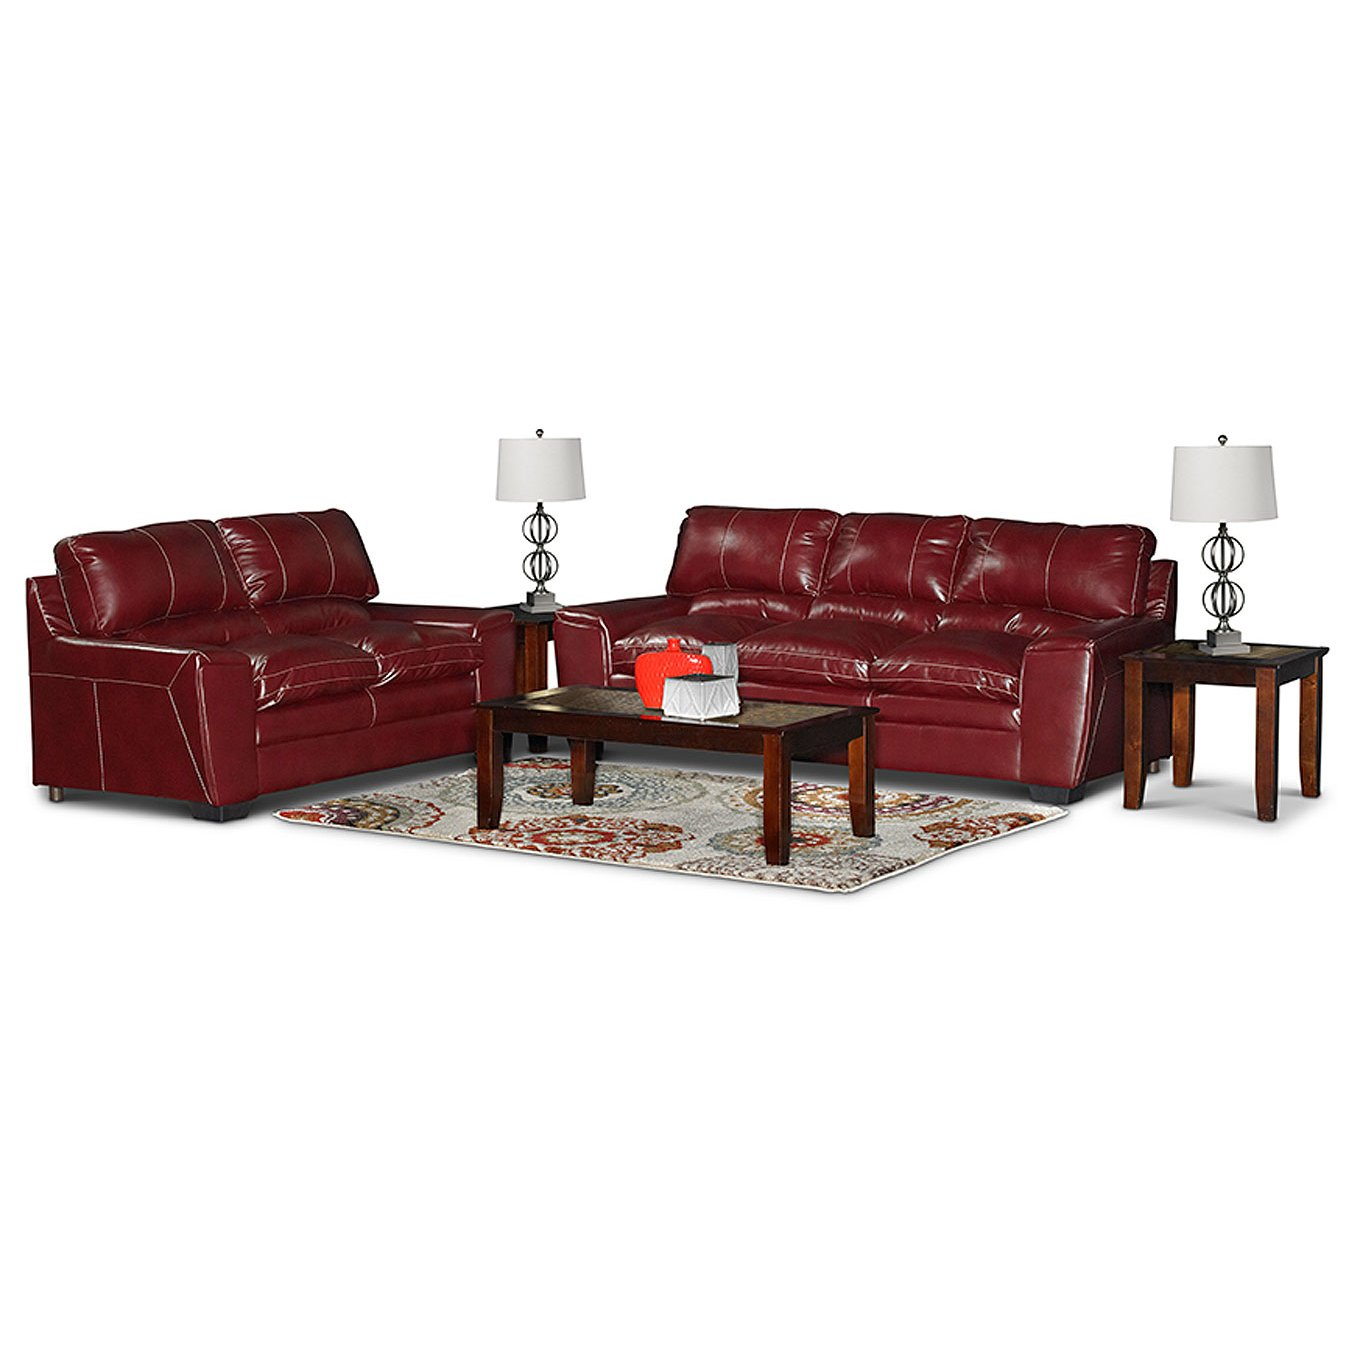 ... Casual Contemporary Red 5 Piece Living Room Set   Caruso